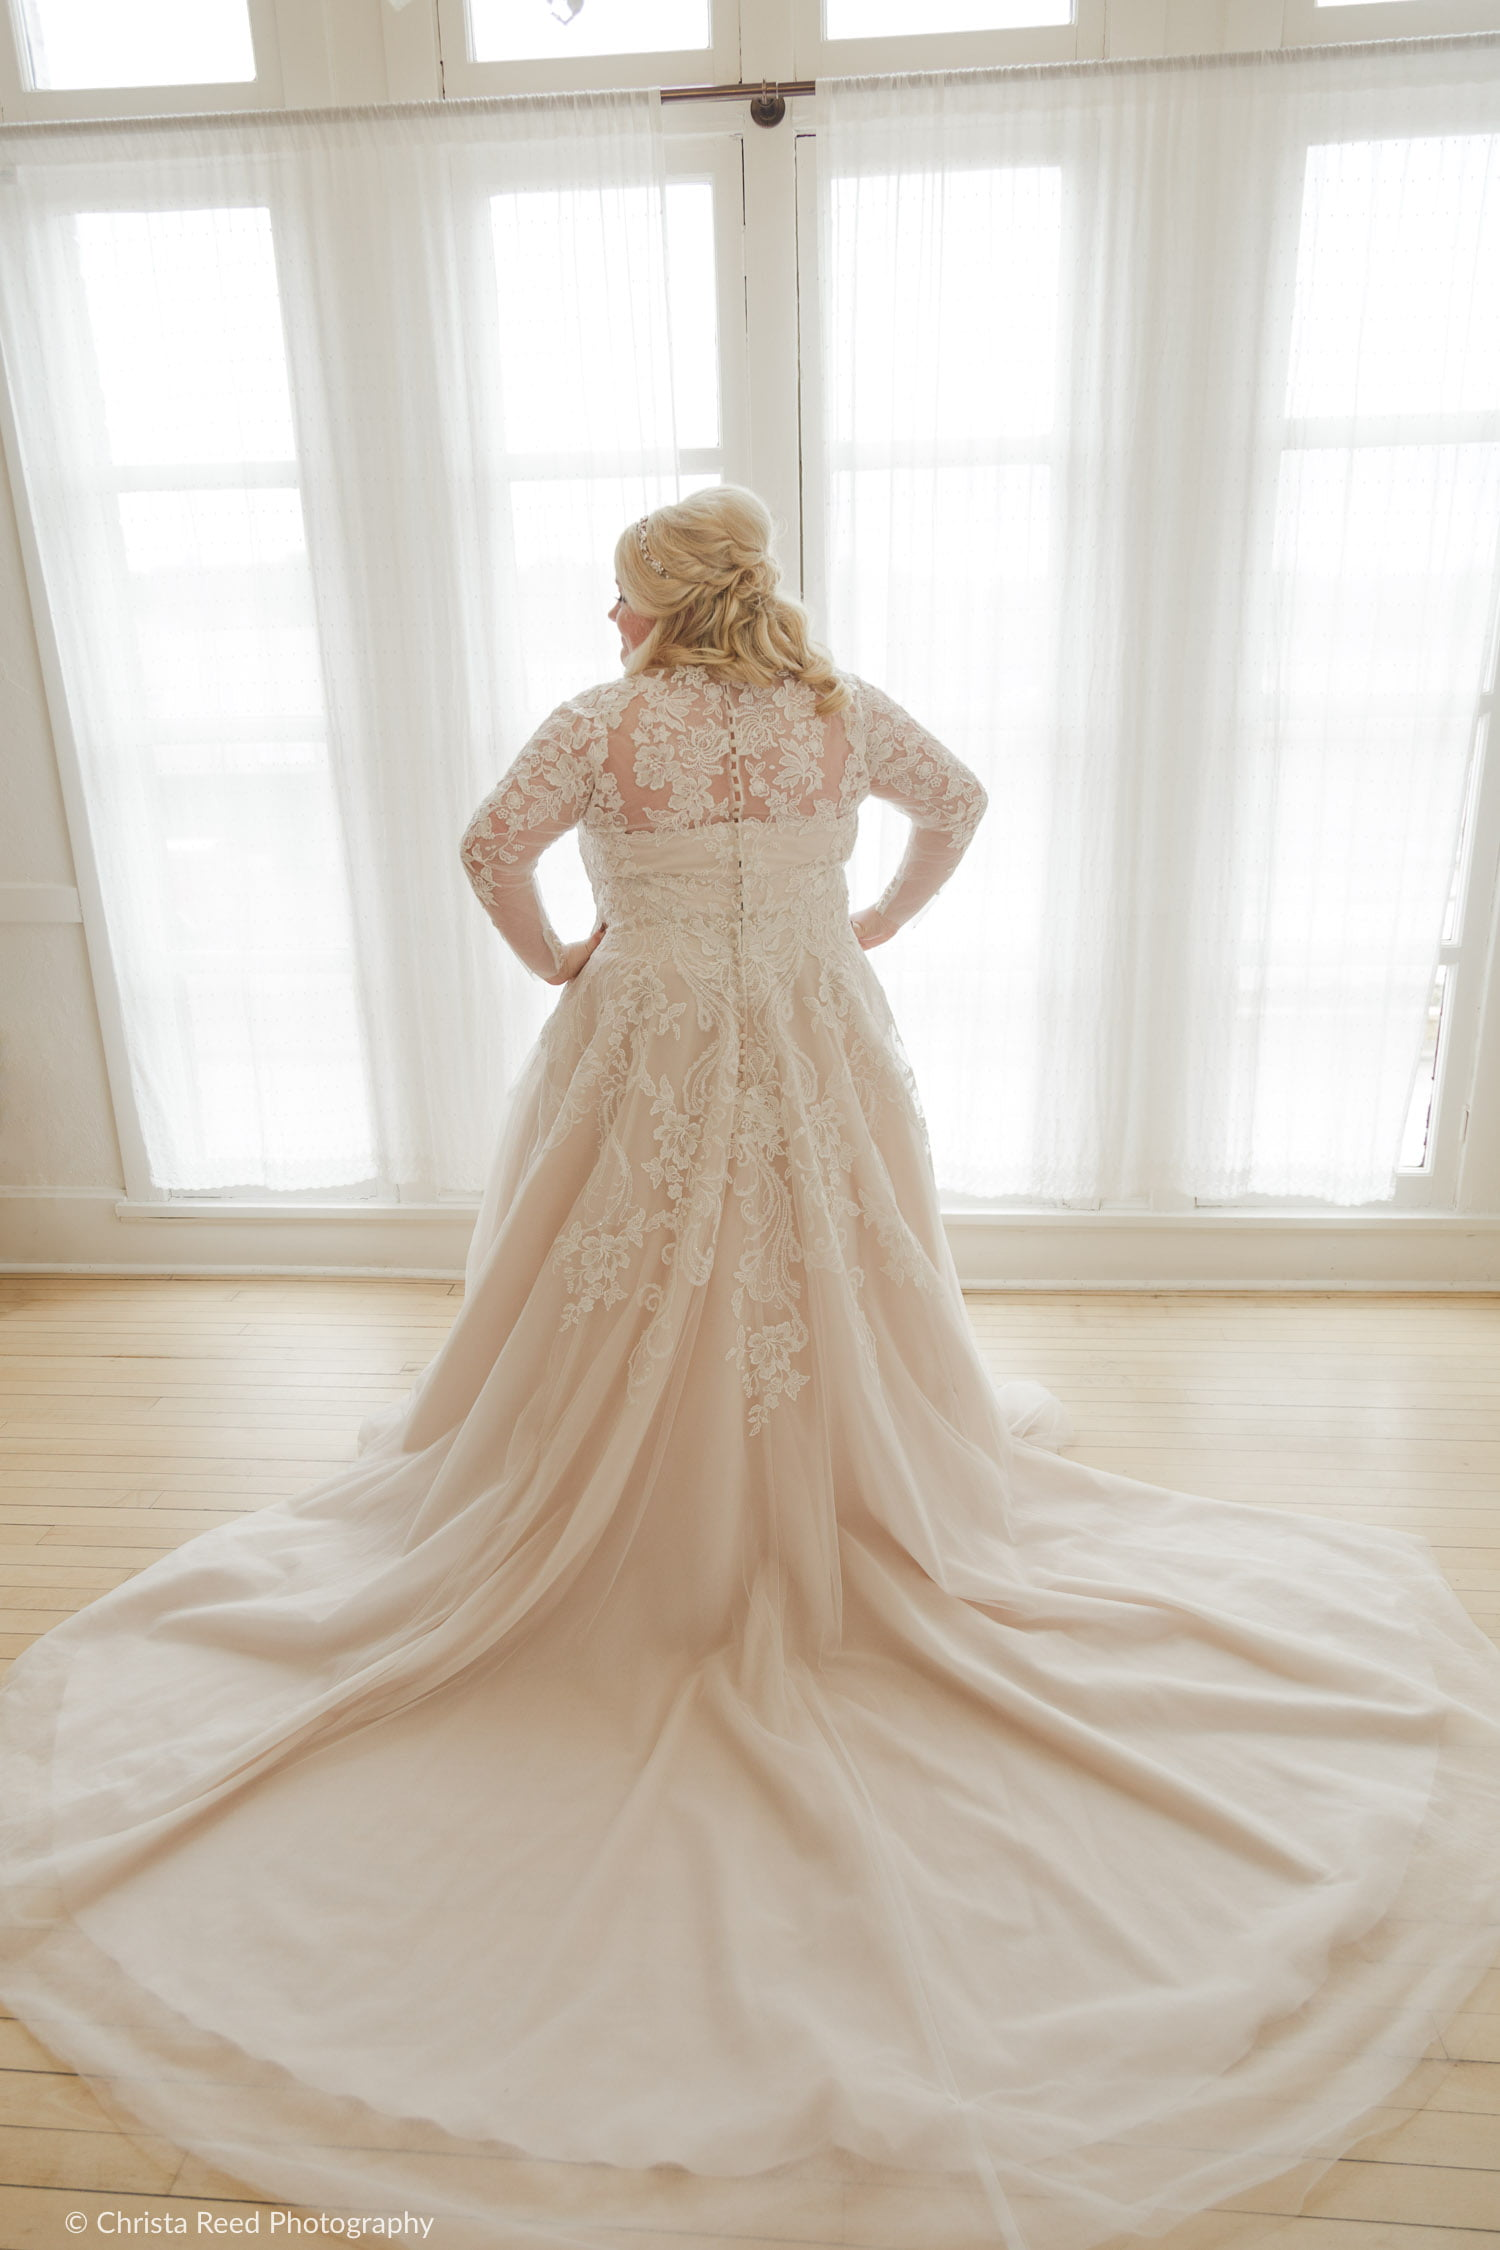 plus size wedding dress with vintage lace long train and buttons down the back